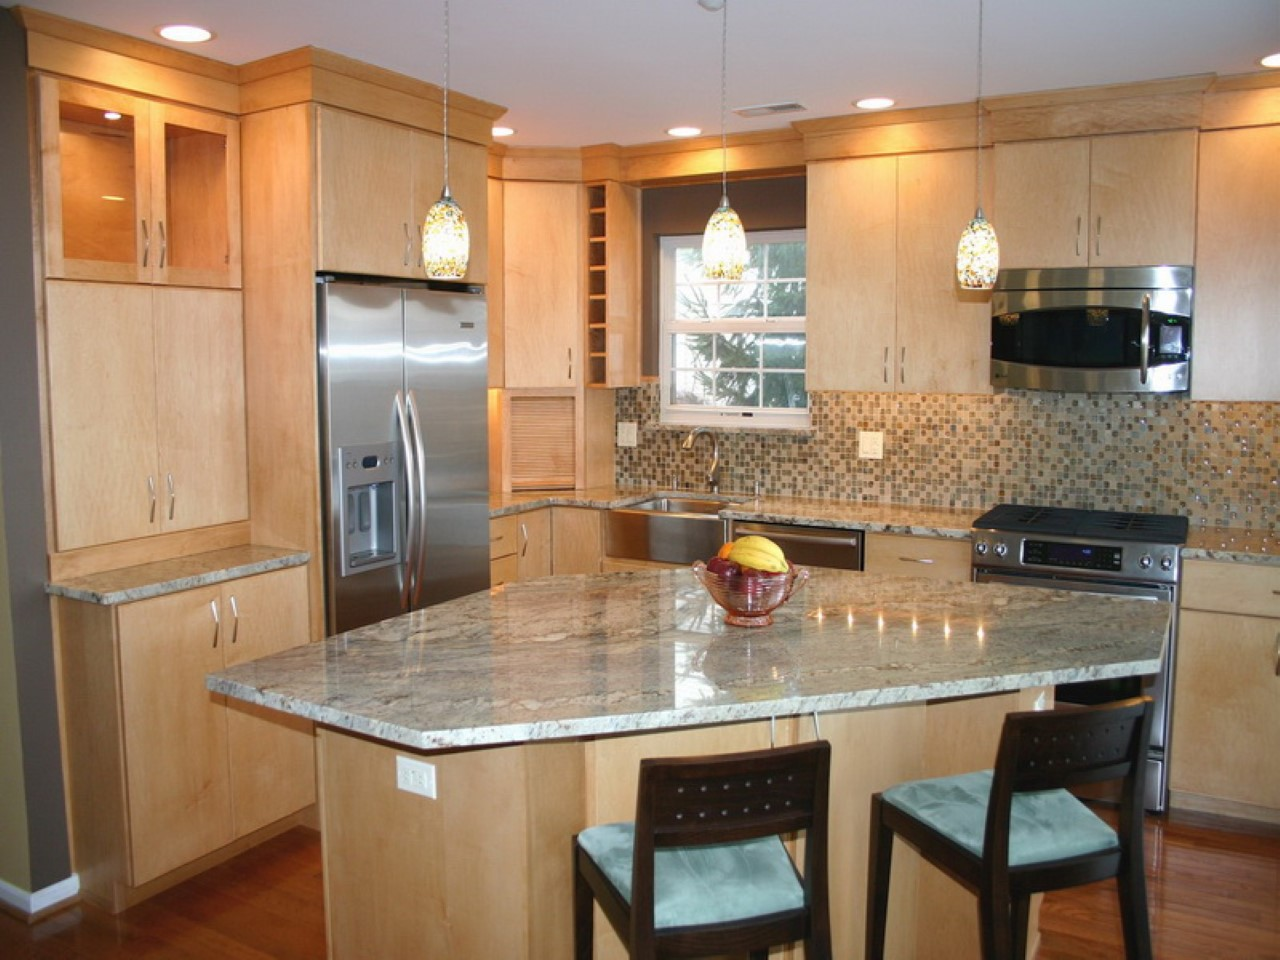 Best small kitchen design with island for perfect for Design for kitchen island